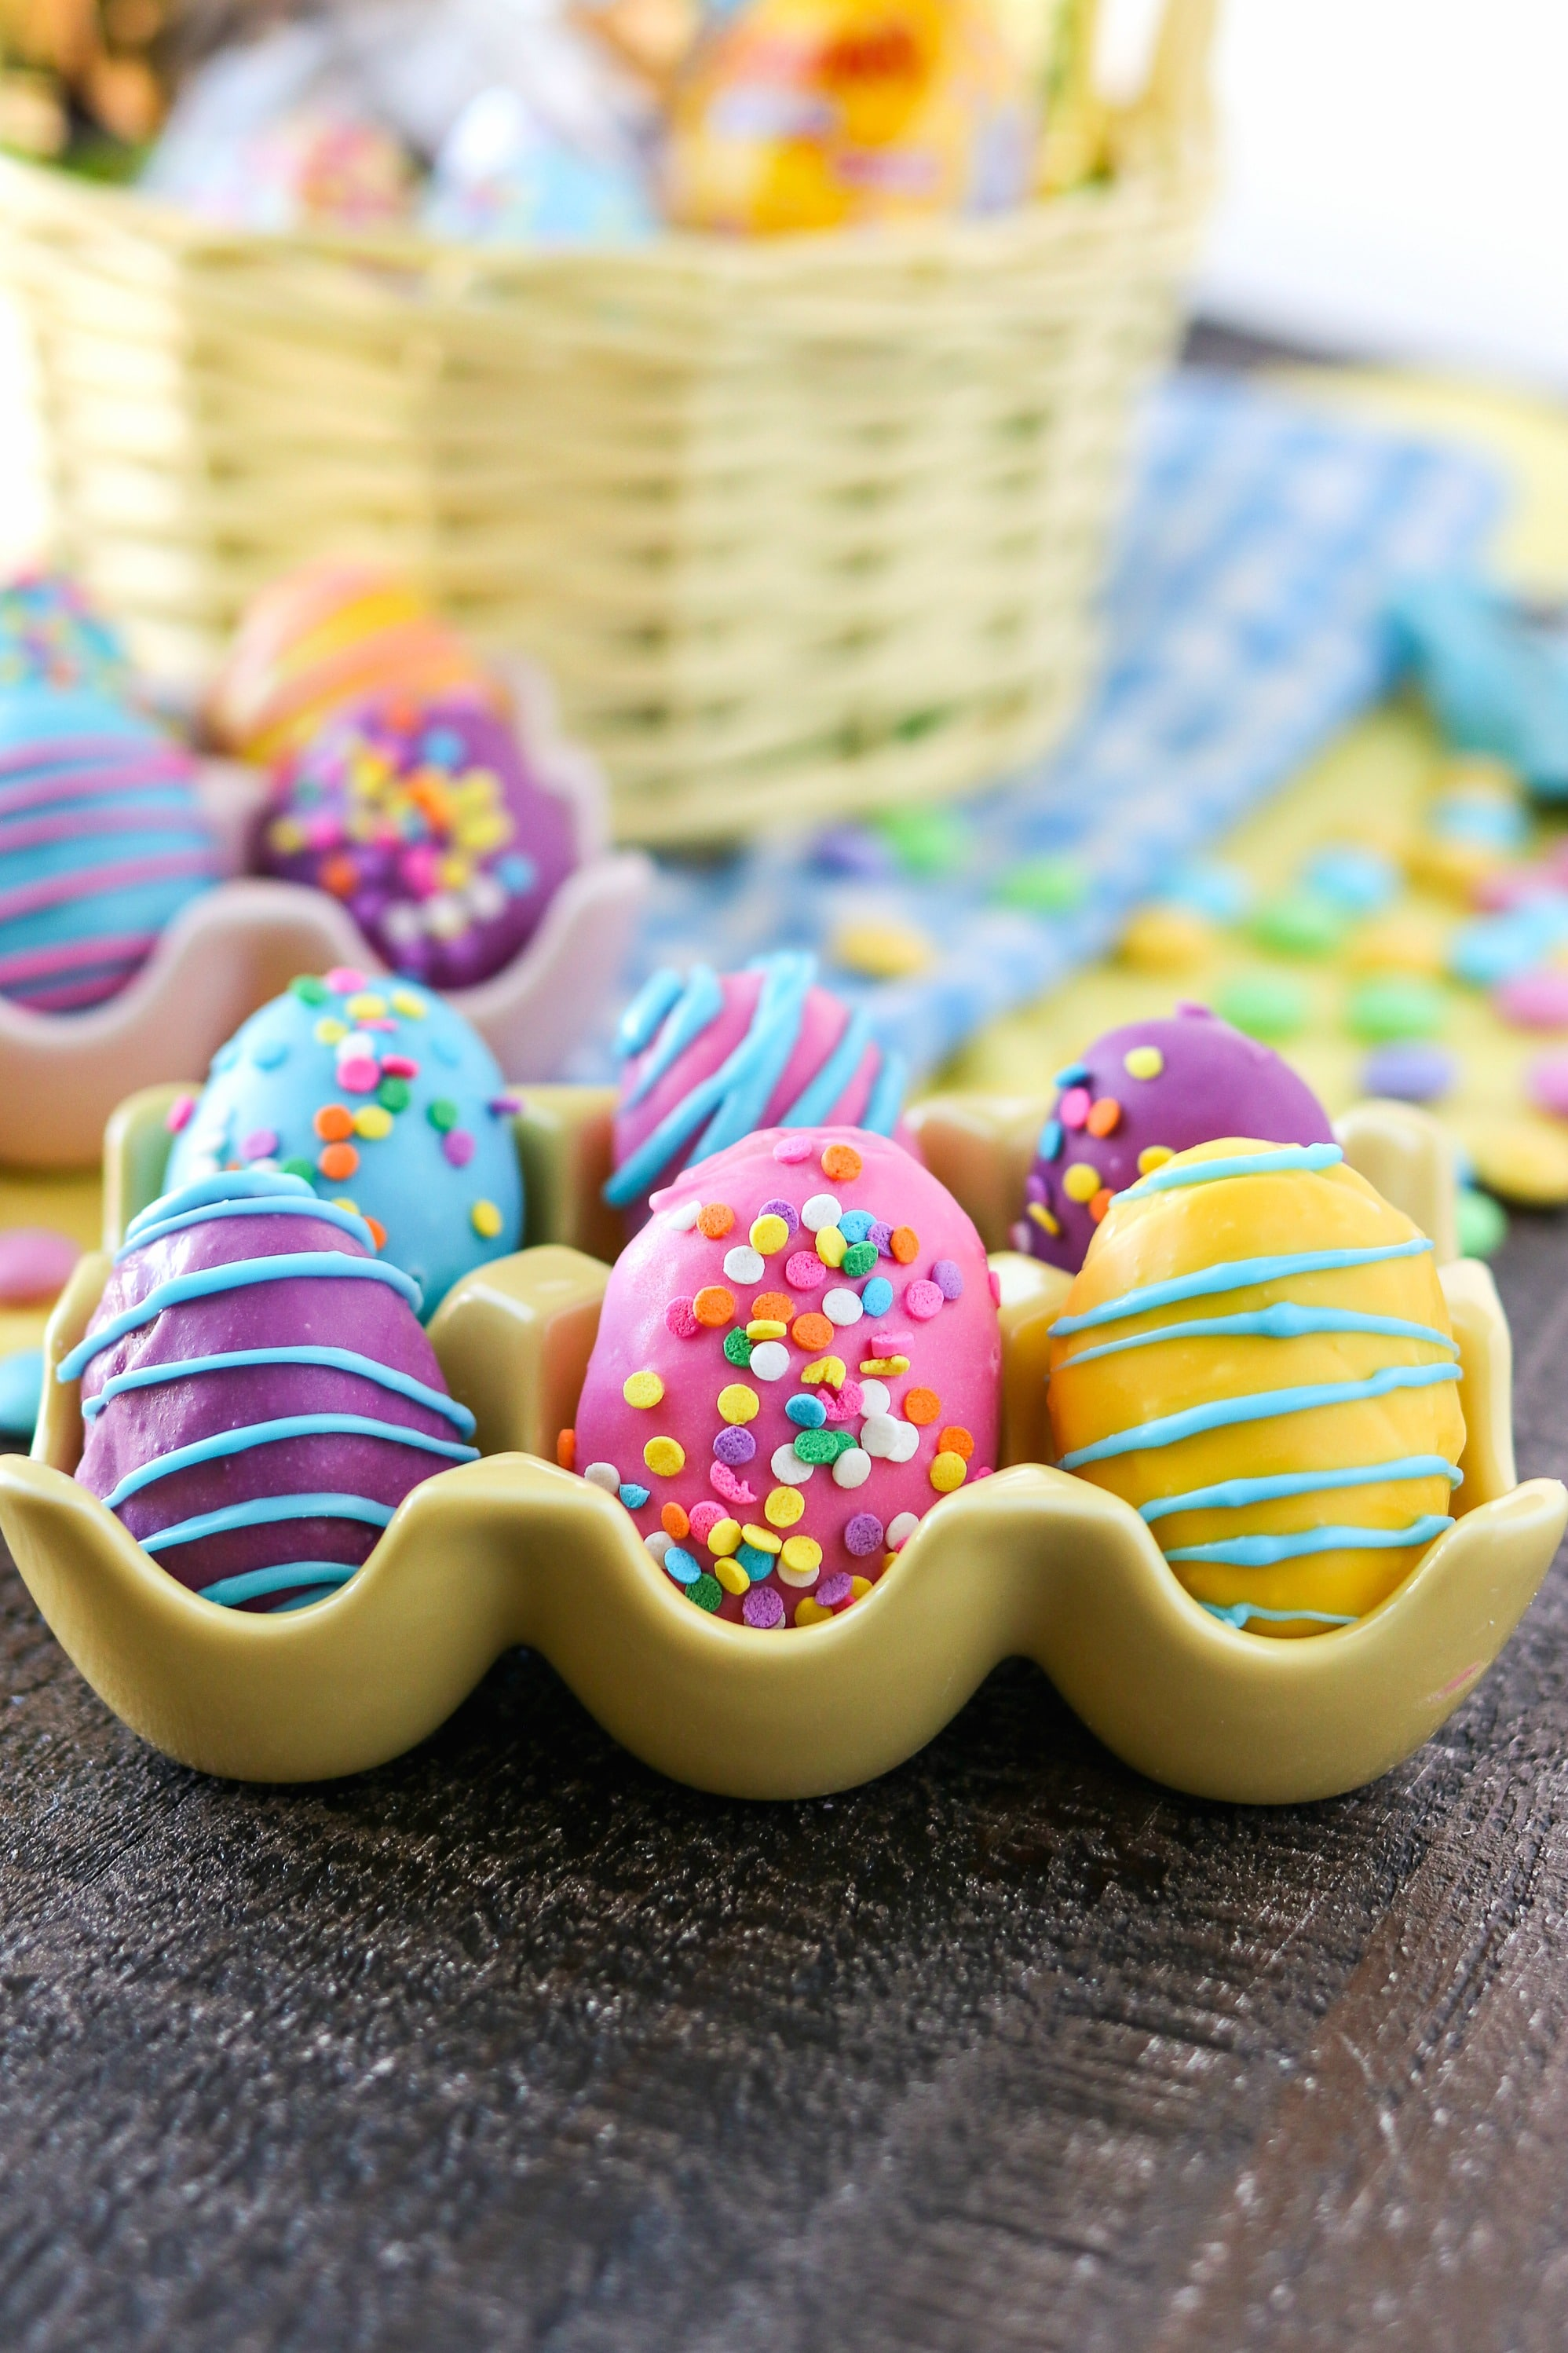 Cookie Dough Easter Eggs with M&M's® decorated in pastel colors